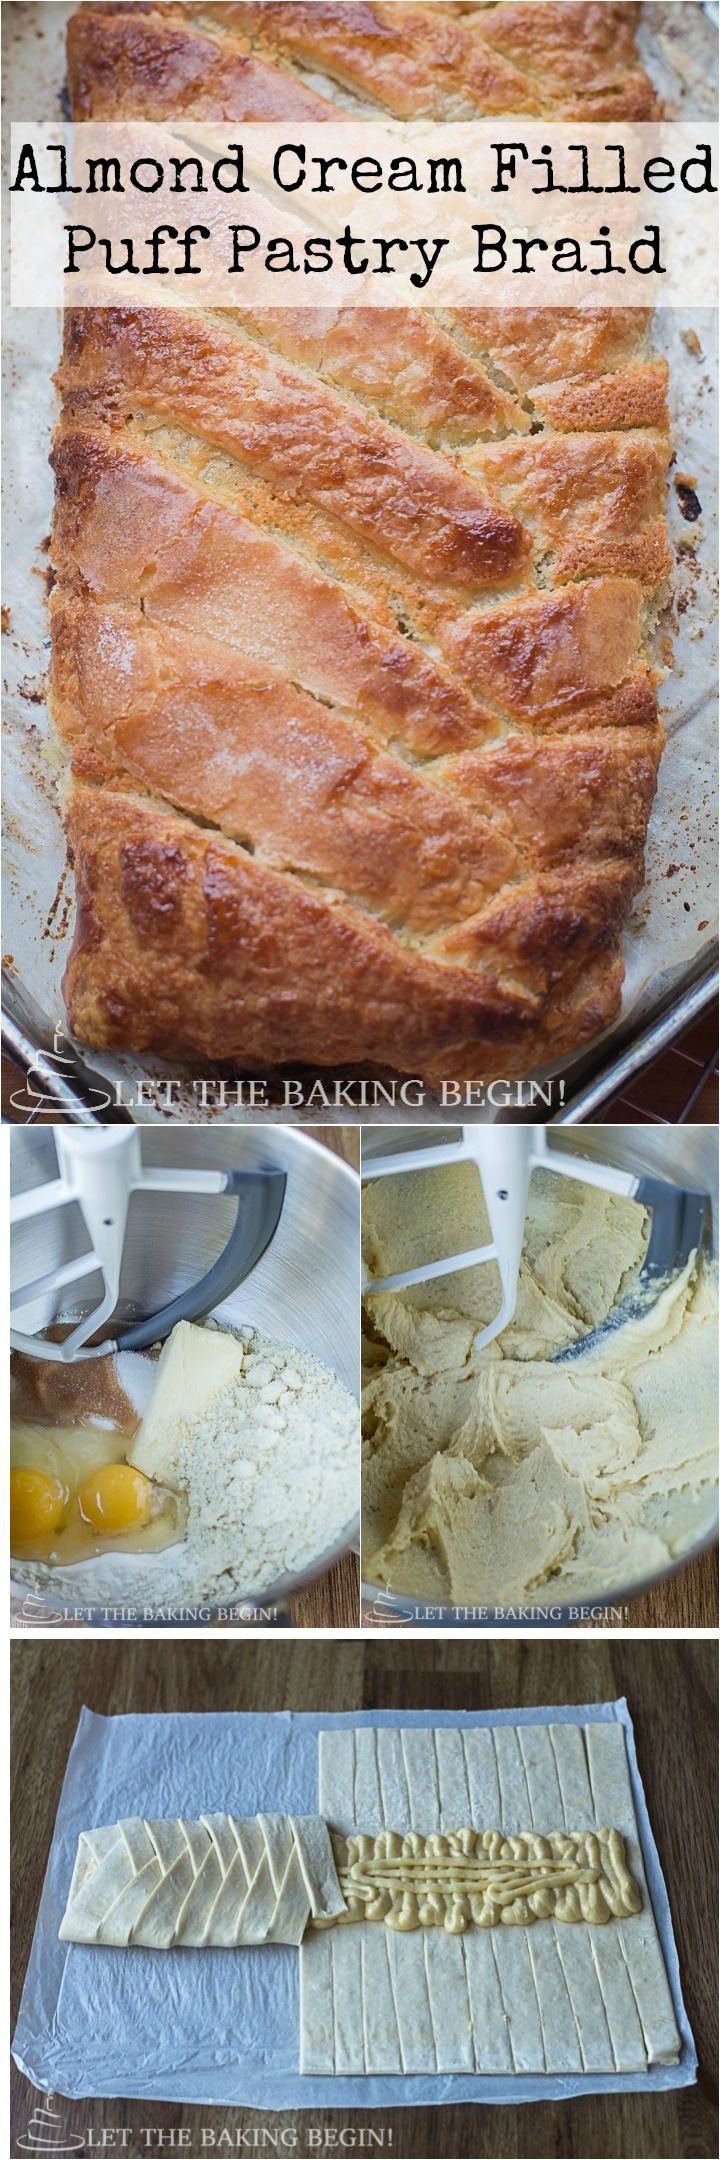 Almond Filled Puff Pastry Braid Recipe - Just like the Bear Claw, just much, much easier! Enjoy it for breakfast with your family. by @Letthebakingbgn | LetTheBakingBeginBlog.com